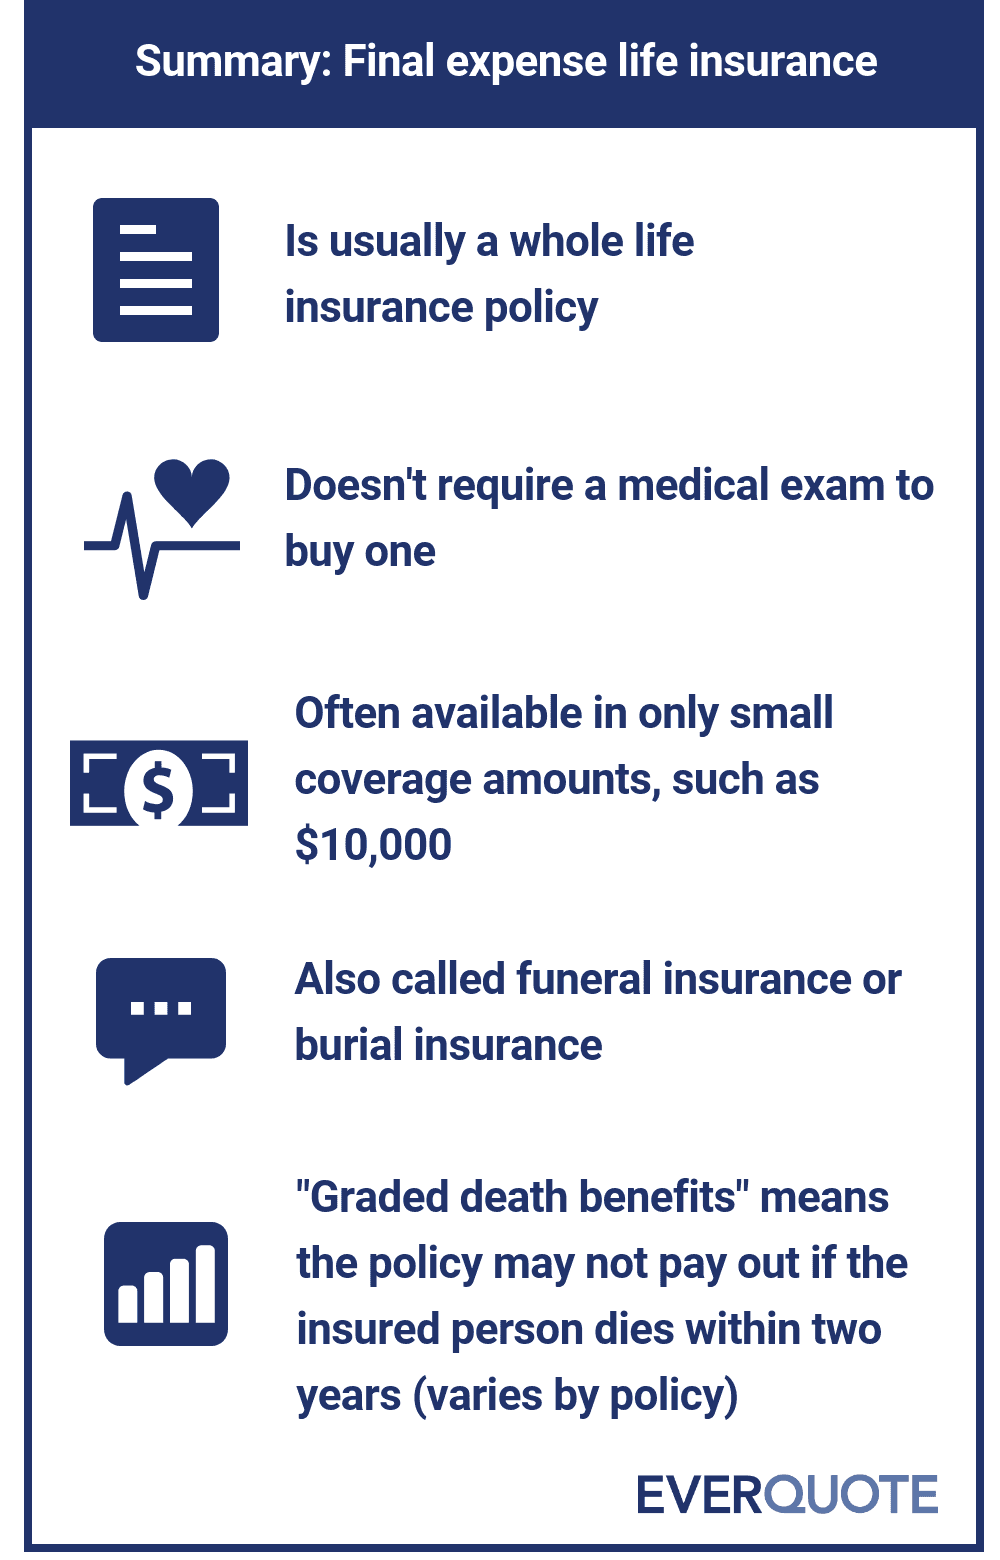 The basics of final expense life insurance